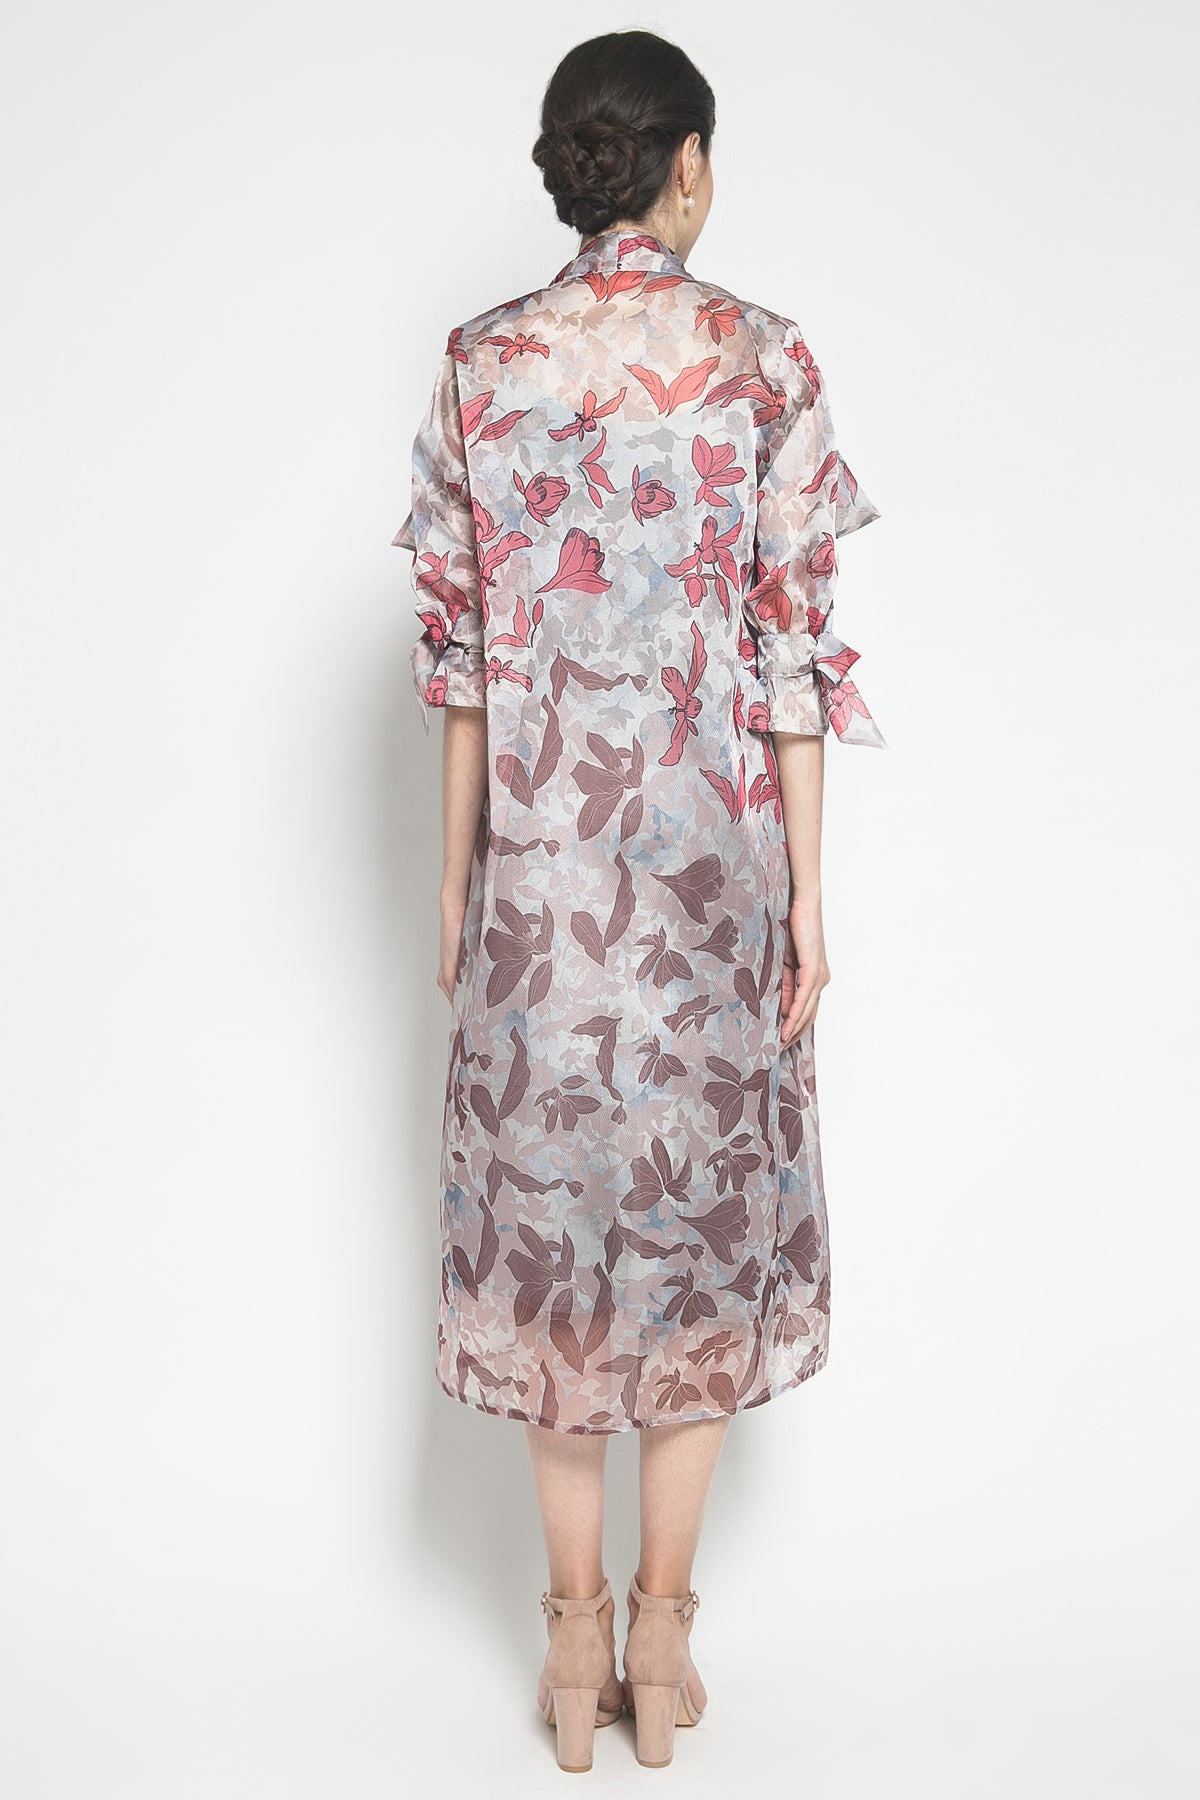 MYVB Atelier Katniss Printed Organza Outer Dress in Spring